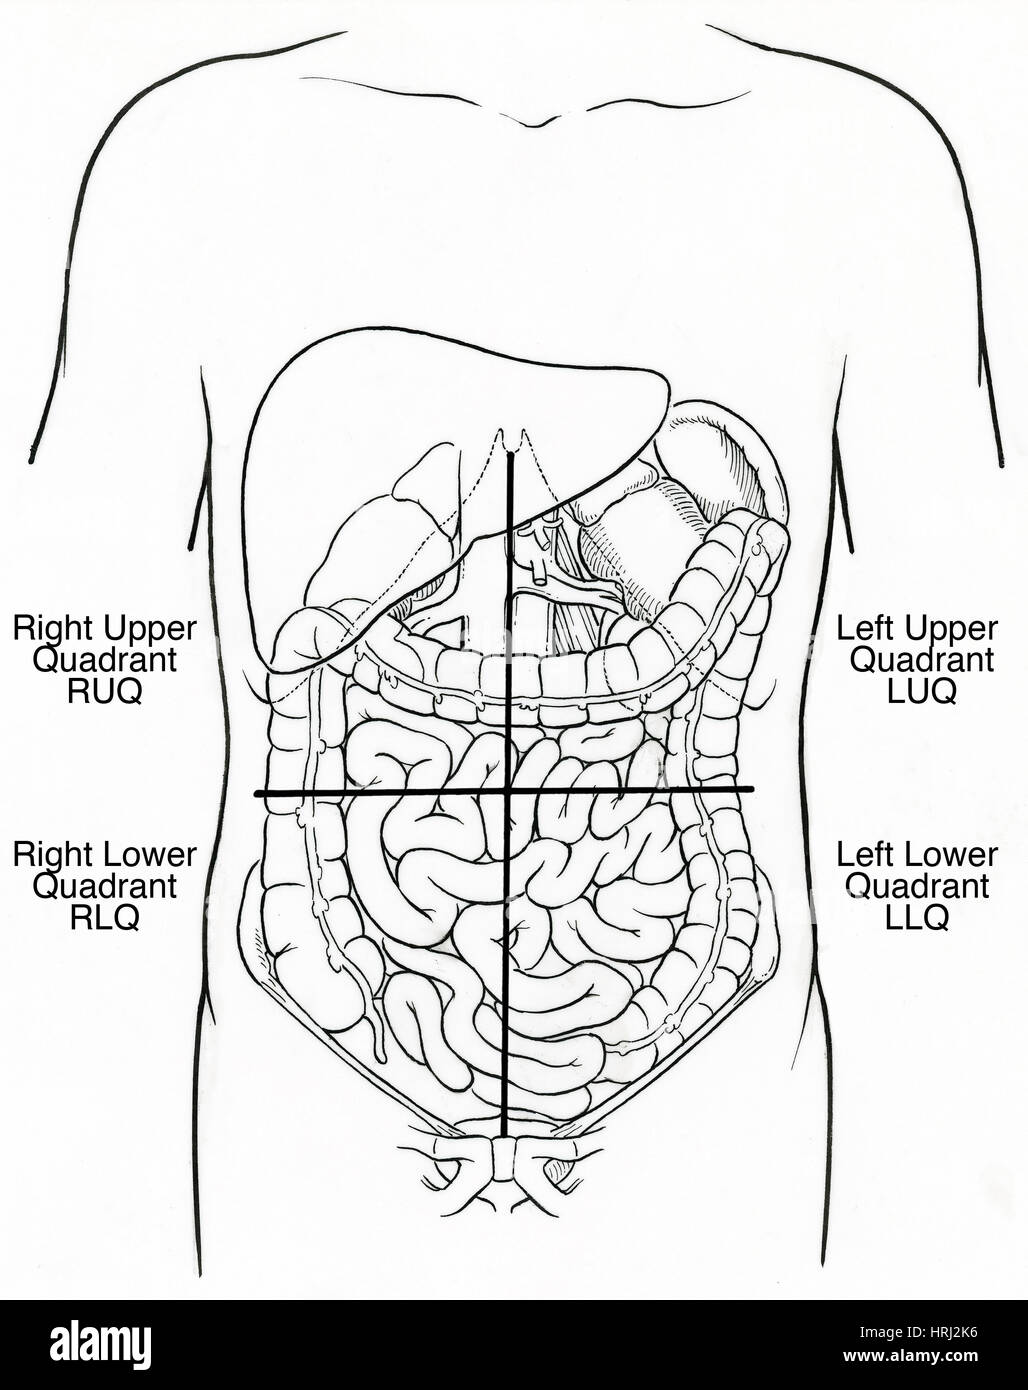 Illustration of Abdominal Quadrants - Stock Image